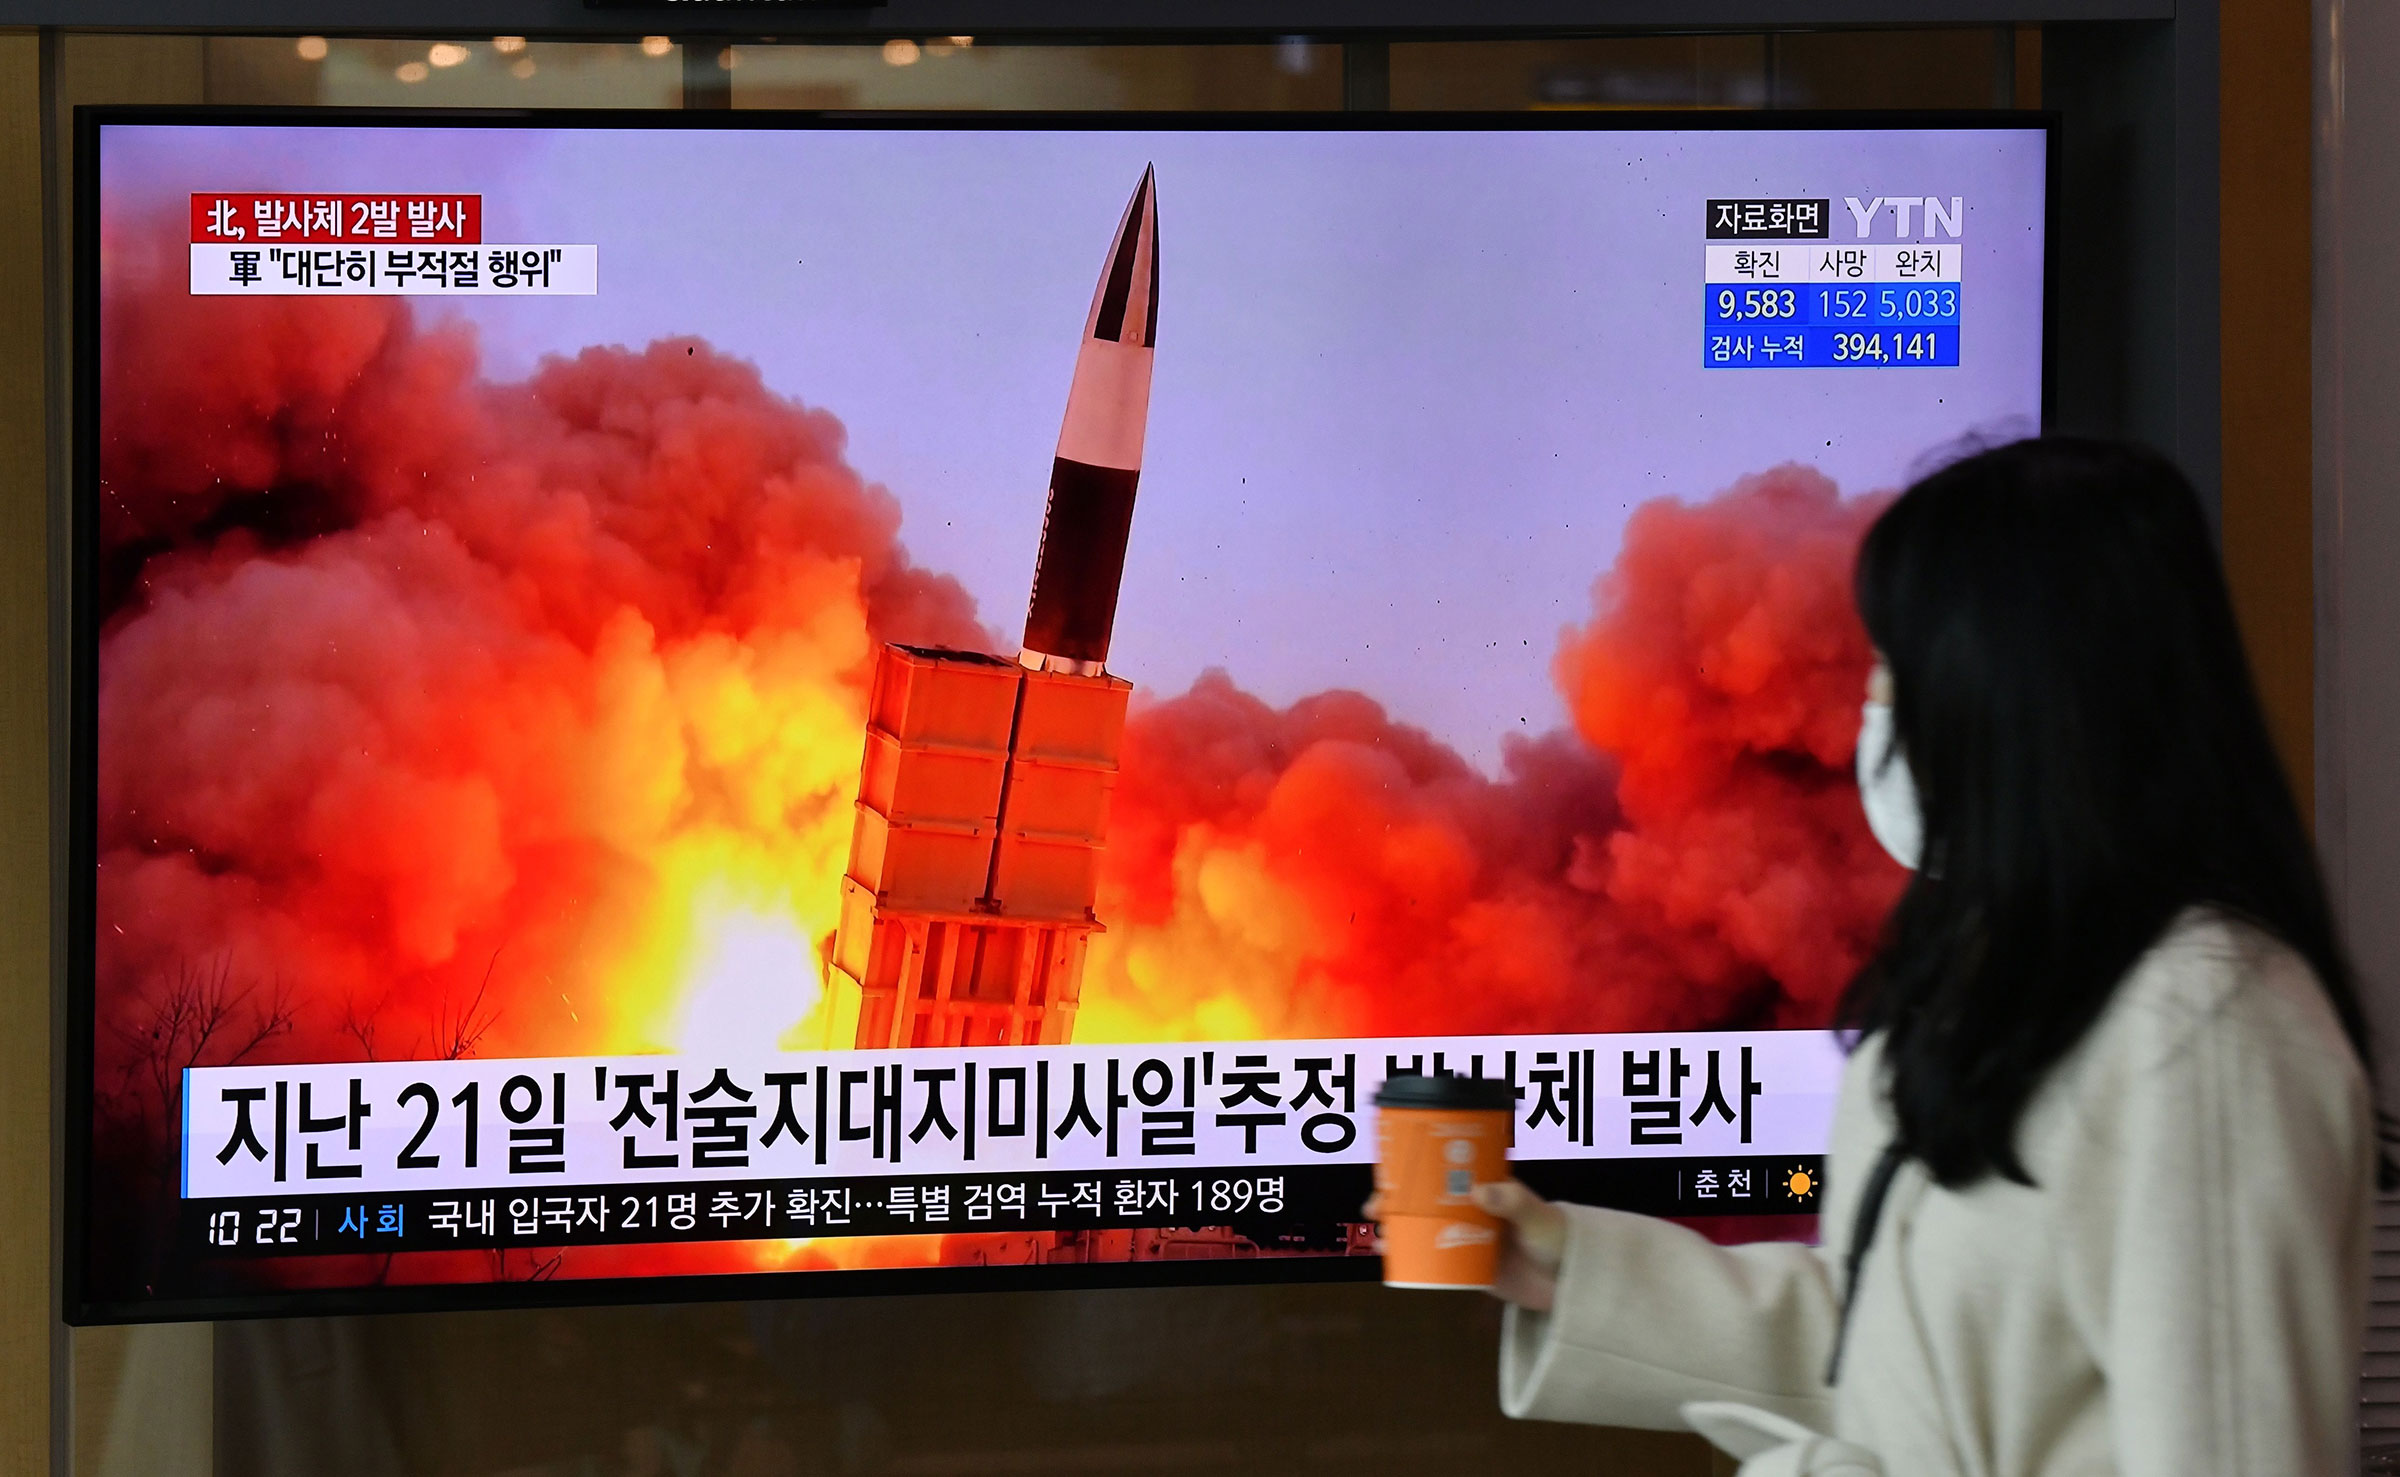 A woman walks past a screen showing file footage of a North Korean missile test, at a railway station in Seoul on March 29